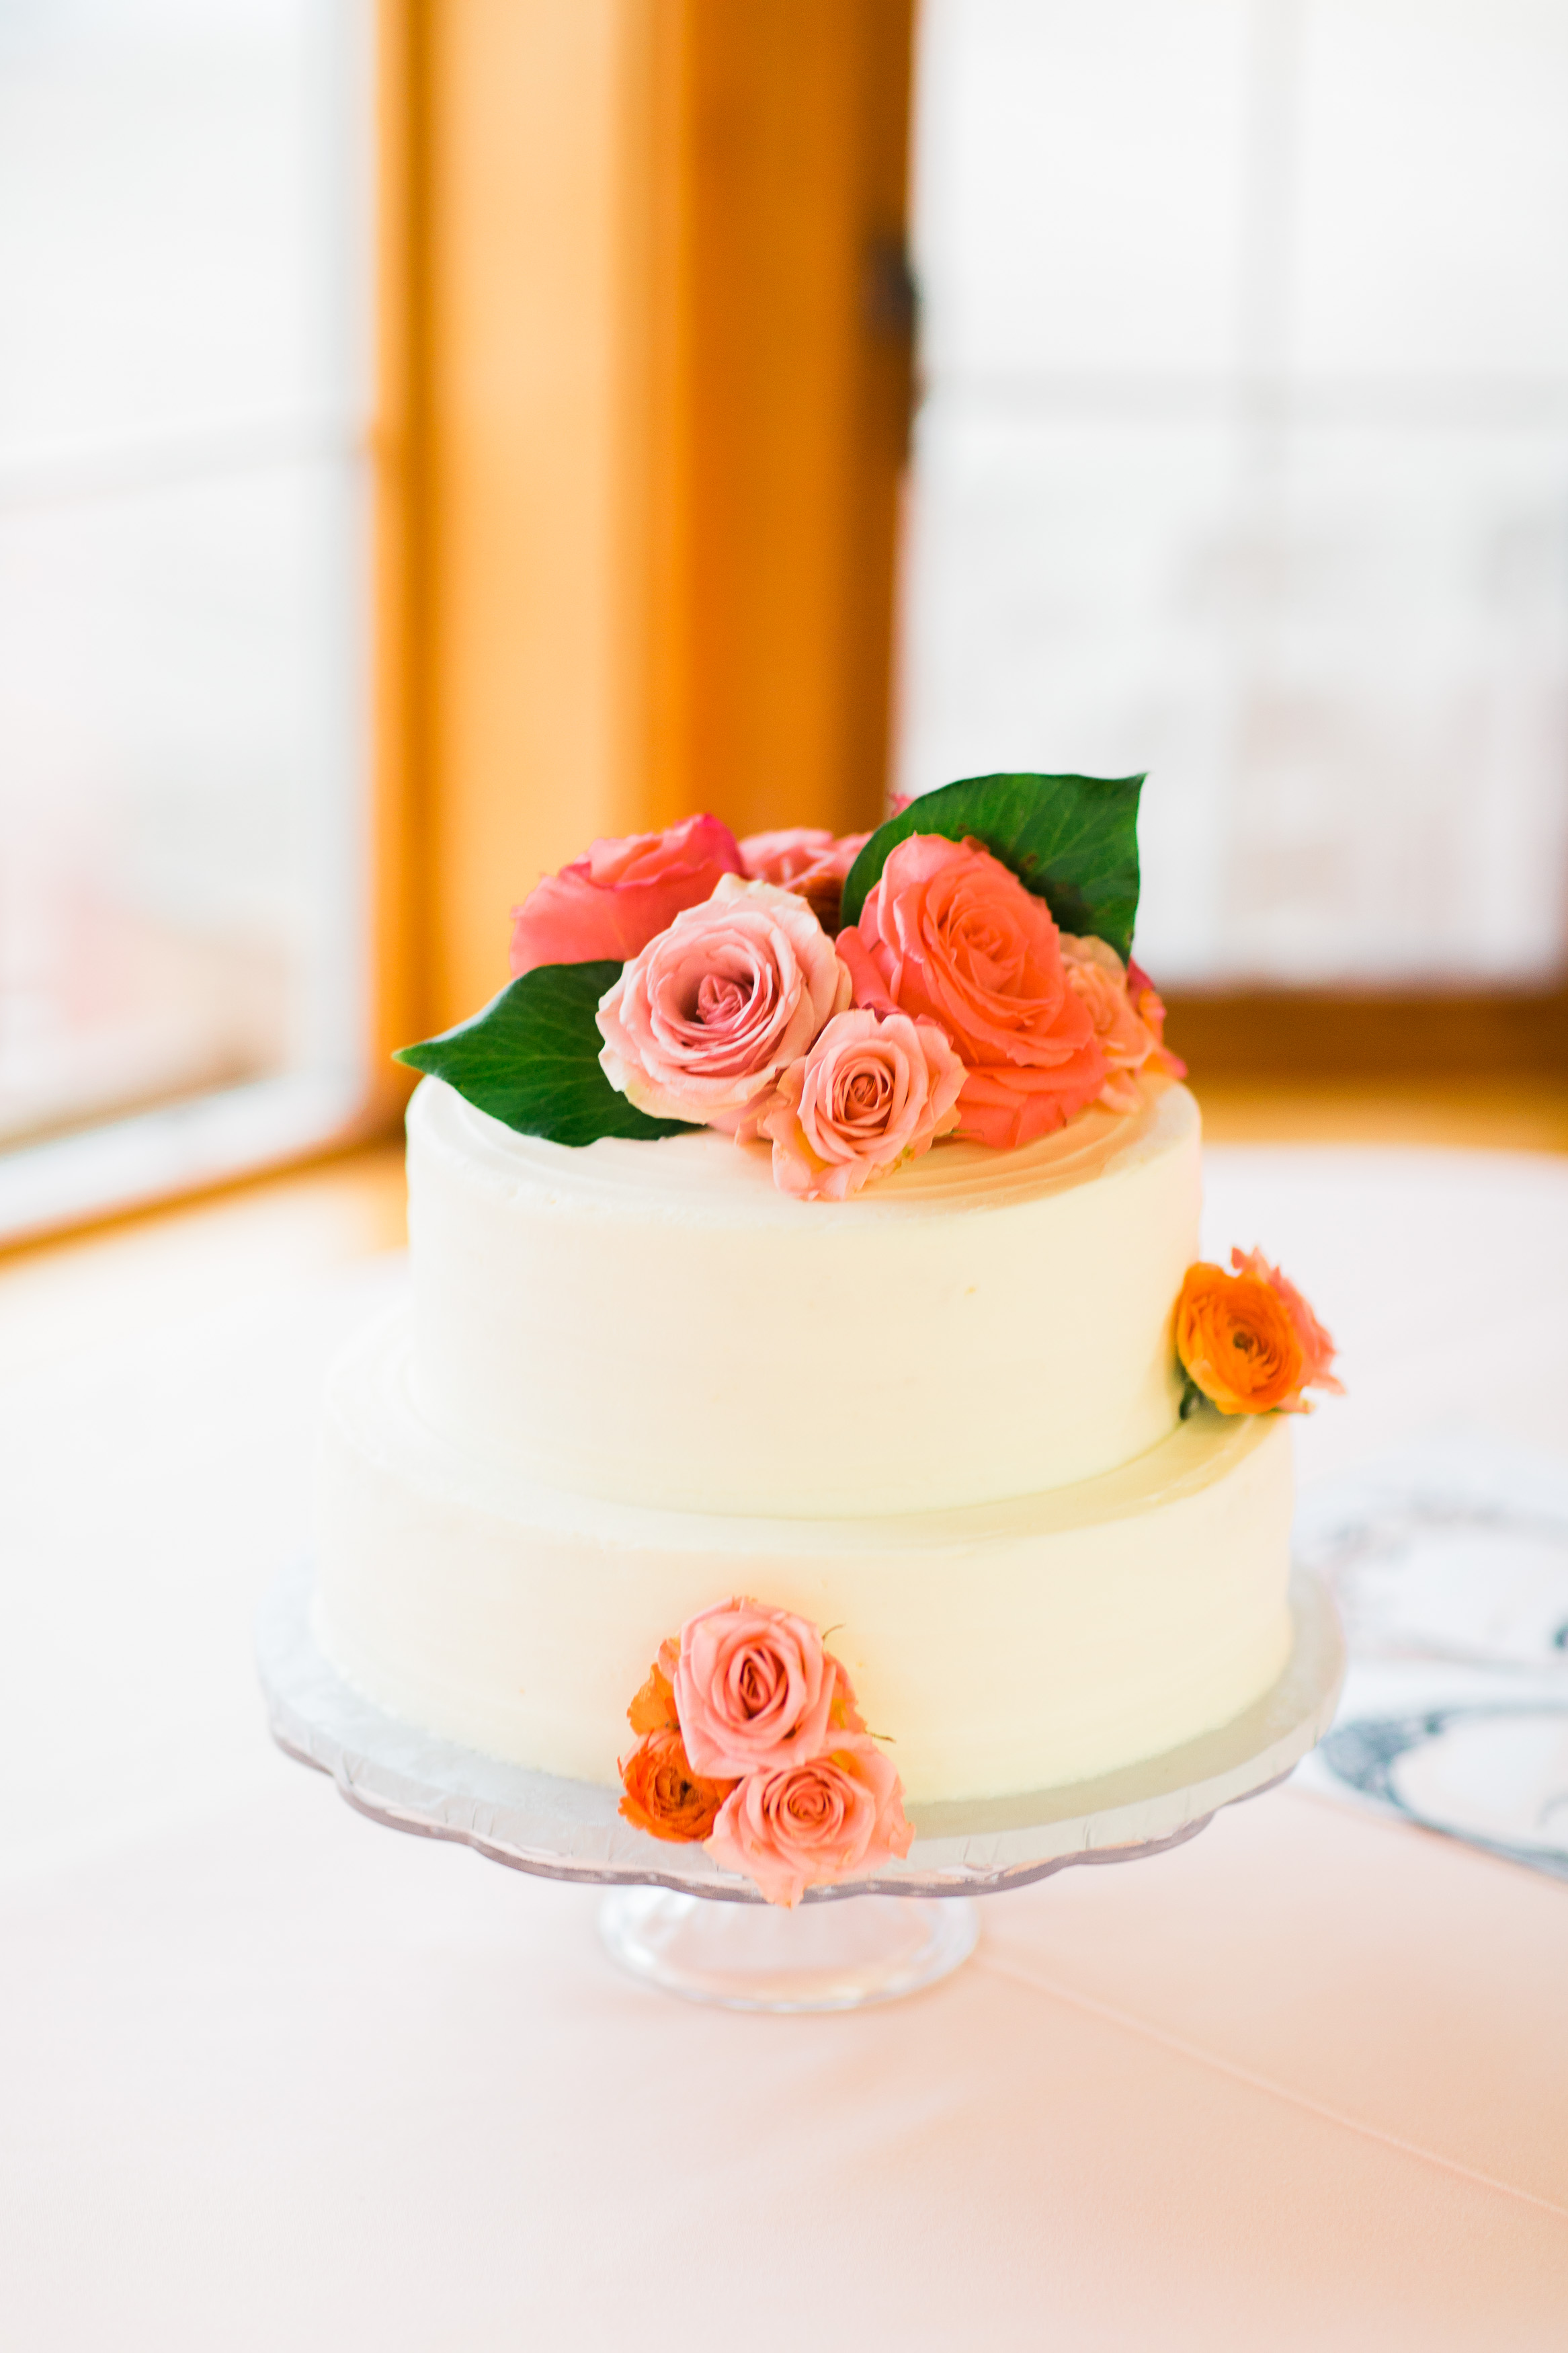 Simple White Wedding Cake   White Cutting Cake   White Wedding Cake with Pink Flowers   Center for Wooden Boats   Asgari Photography   Seattle Wedding Planner   Chinese Wedding Planner